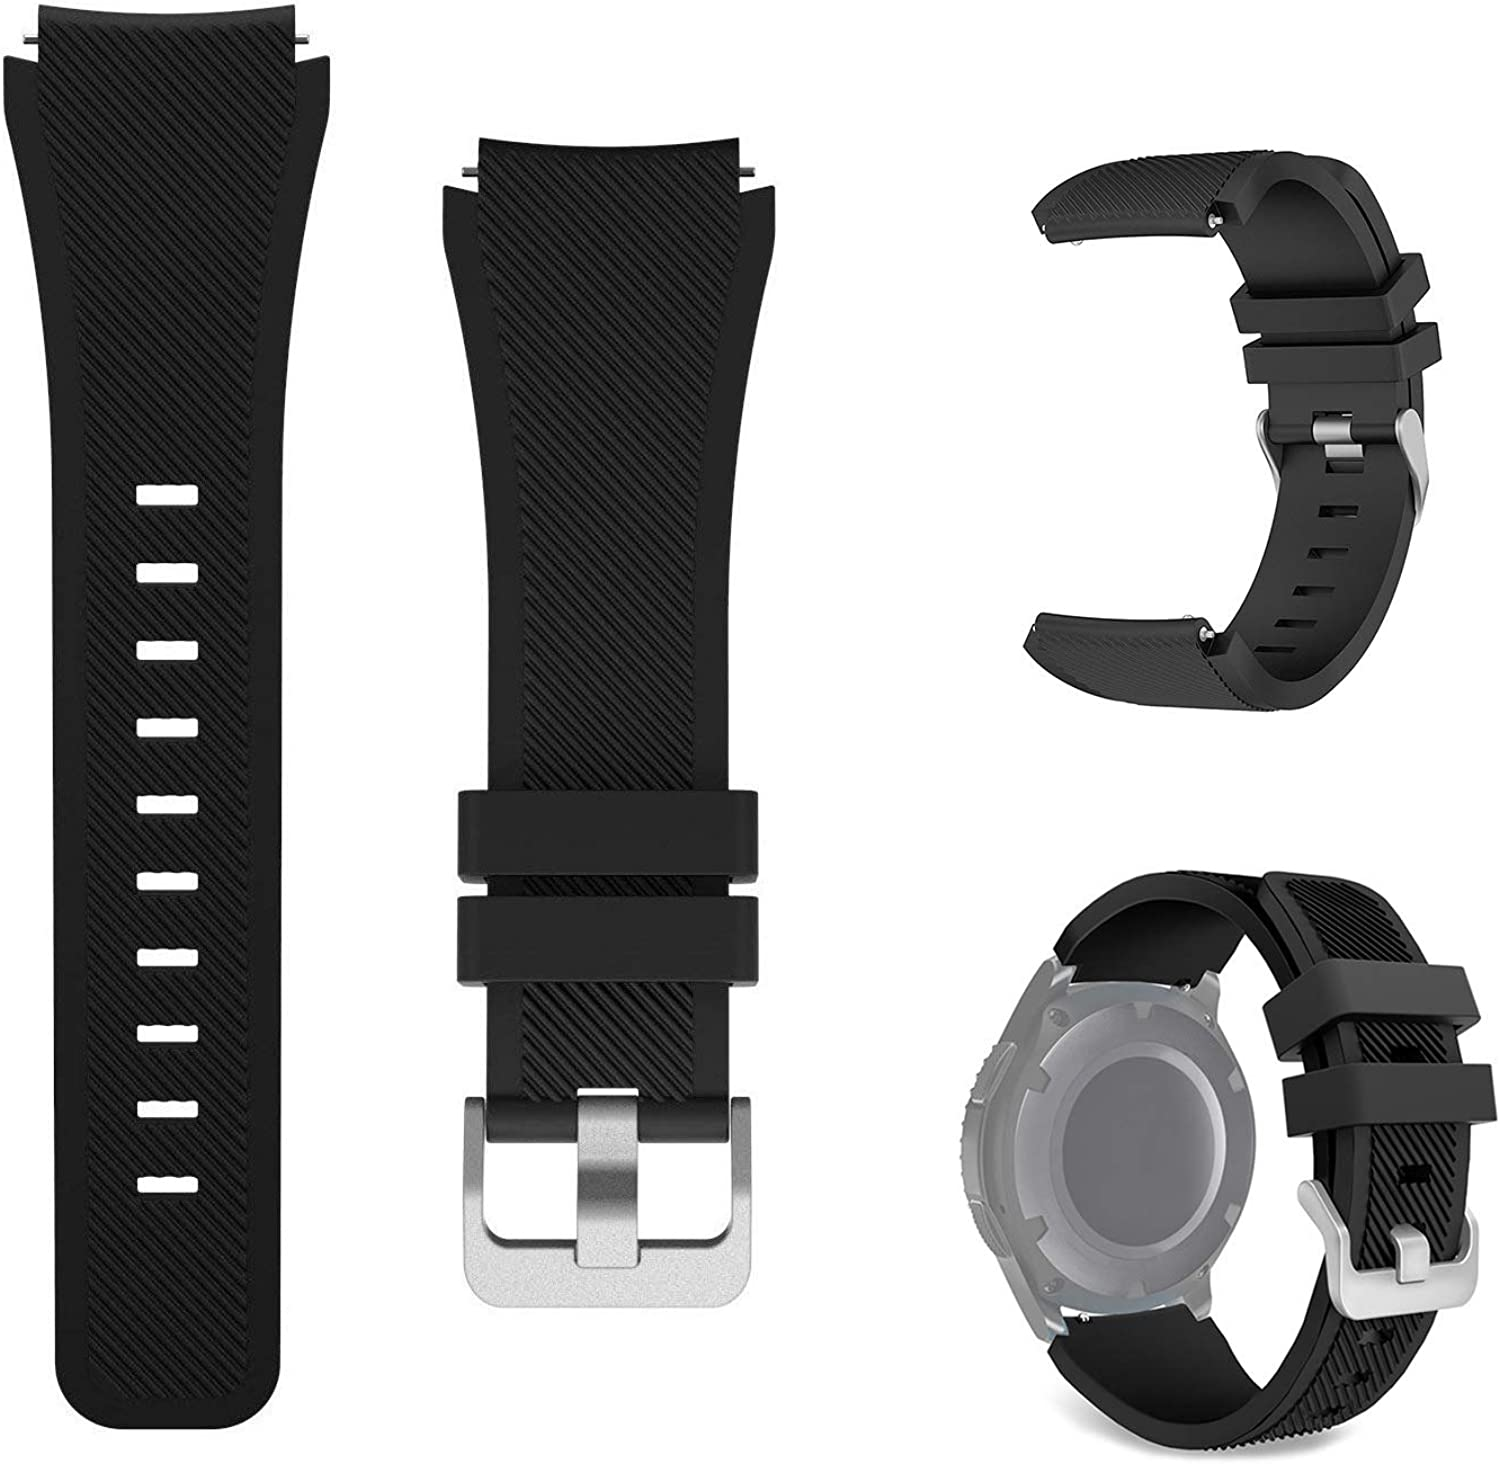 kitway Bands Compatible with Galaxy Watch 3 45mm/Gear S3 Frontier/Gear S3 Classic/Galaxy Watch 46mm, 22mm Soft Silicone Replacement Strap Wristbands for Gear S3 Frontier/S3 Classic Smart Watch